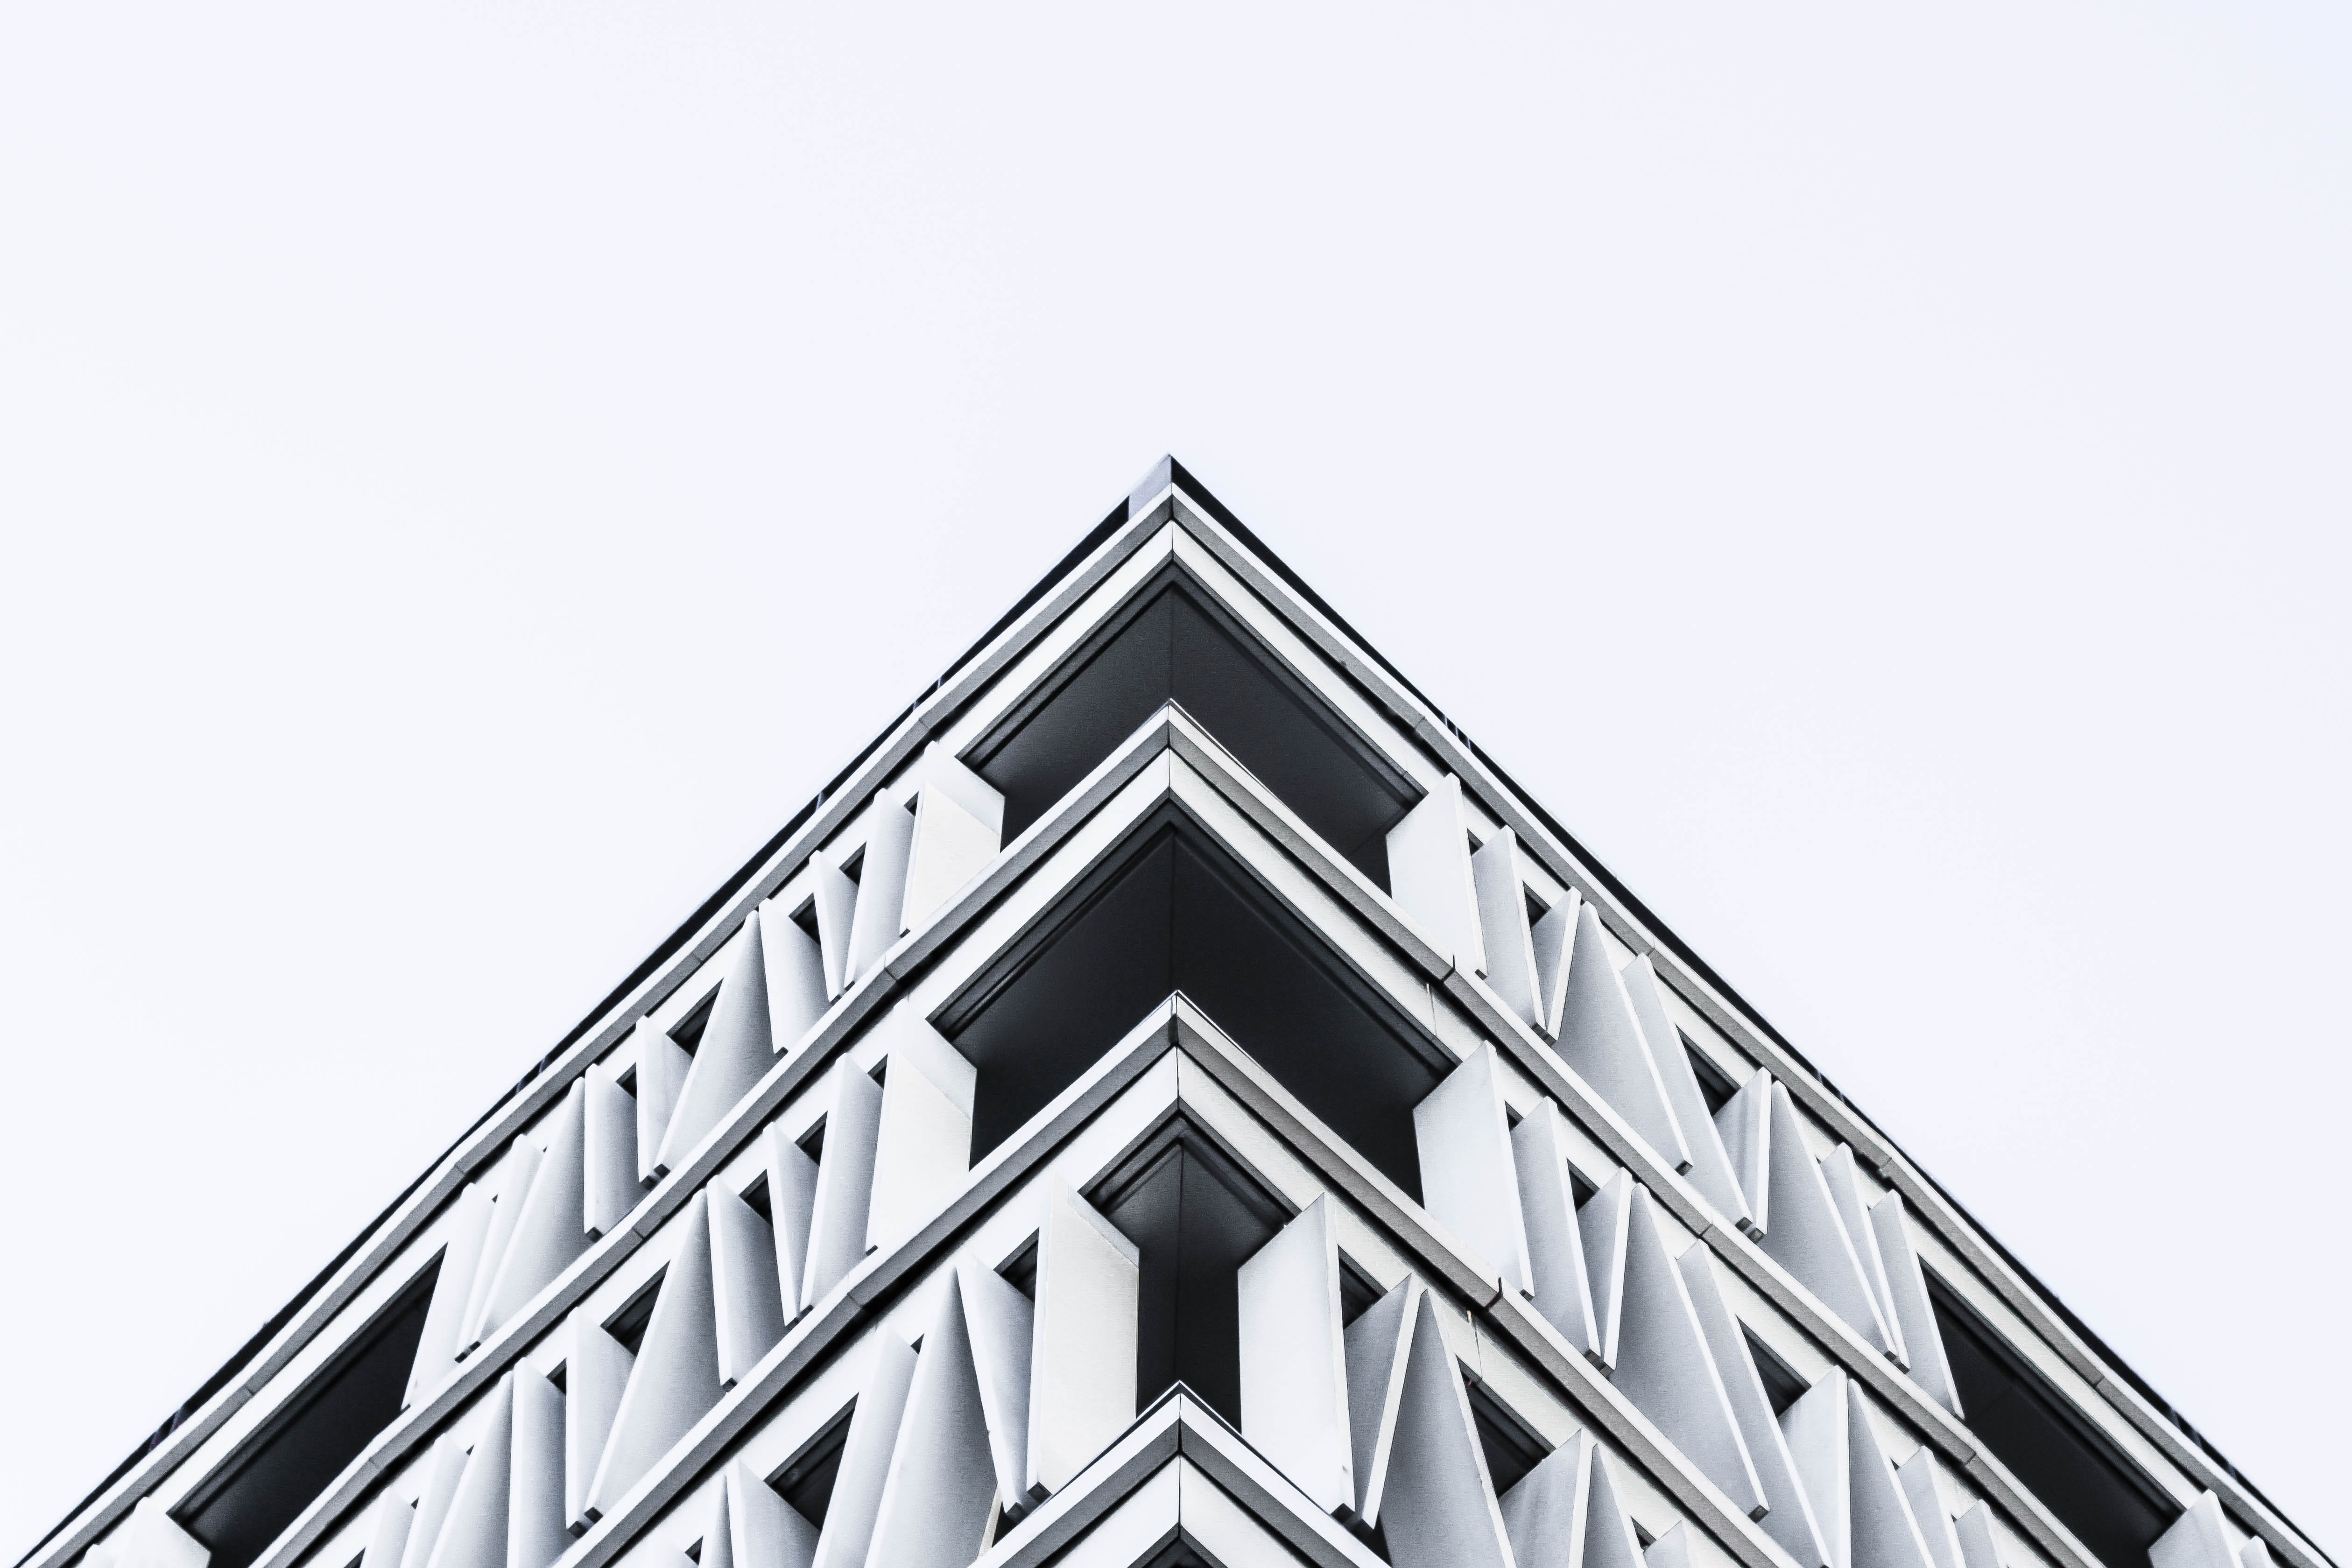 A geometric architecture design of a building in Madrid.